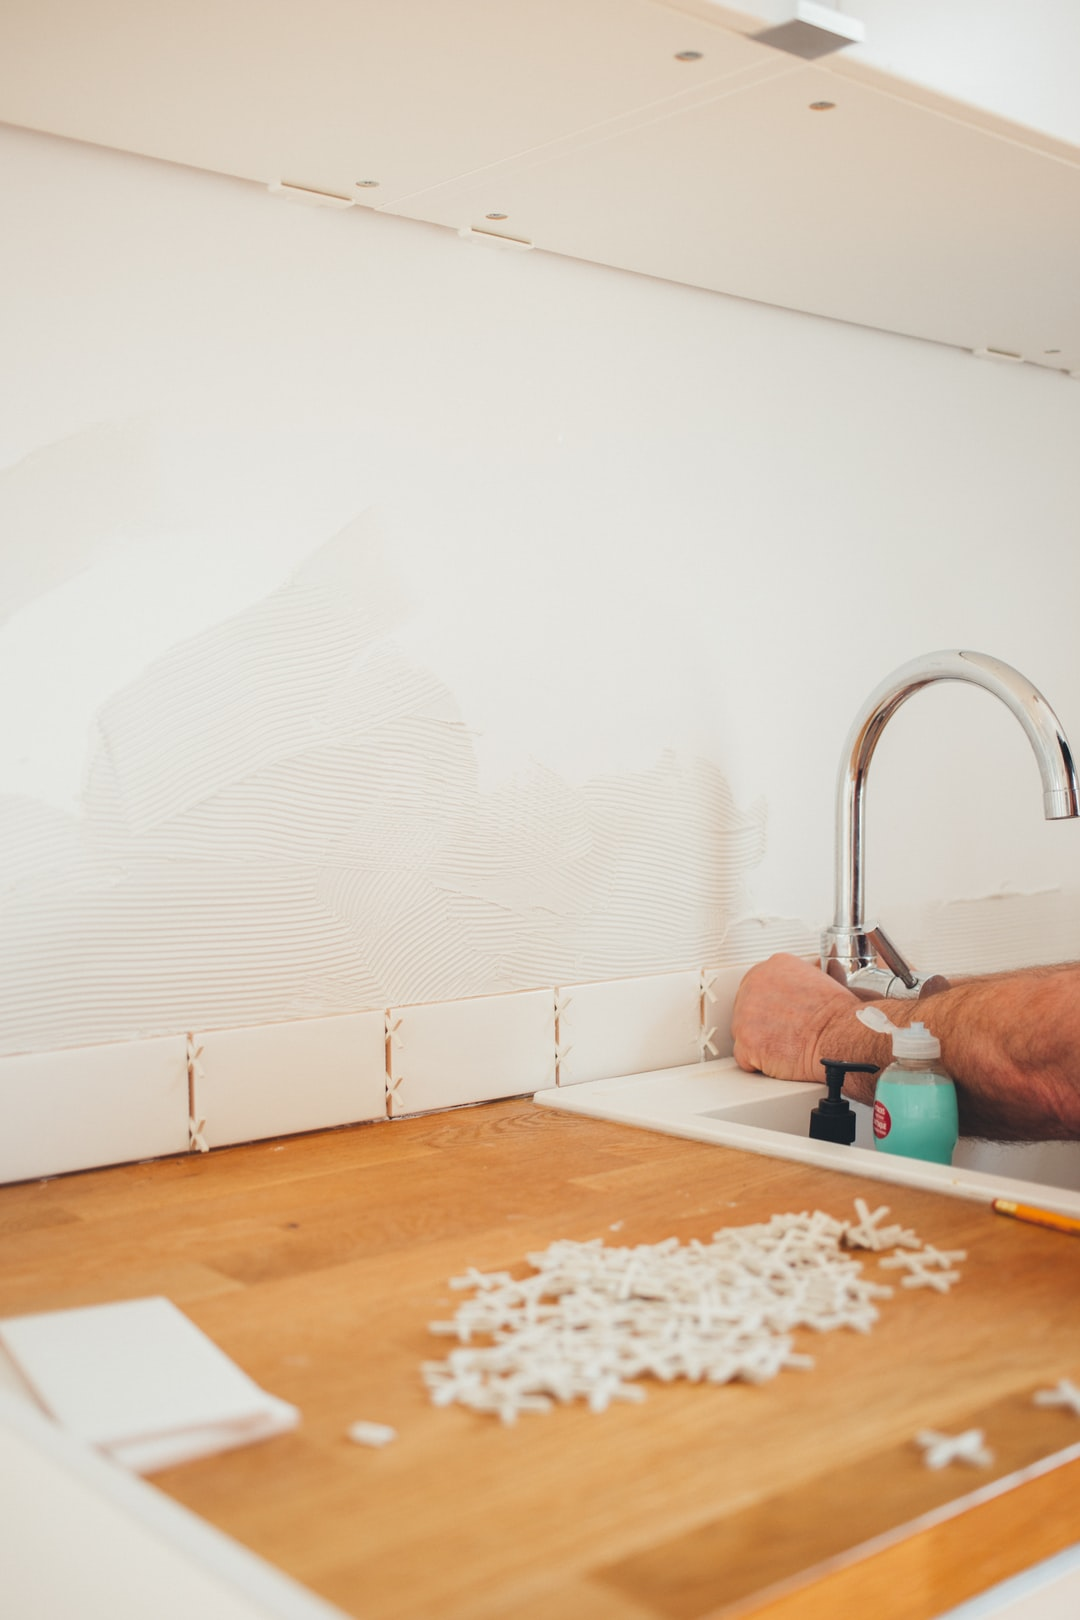 Michel the handyman is installing the kitchen tiles.